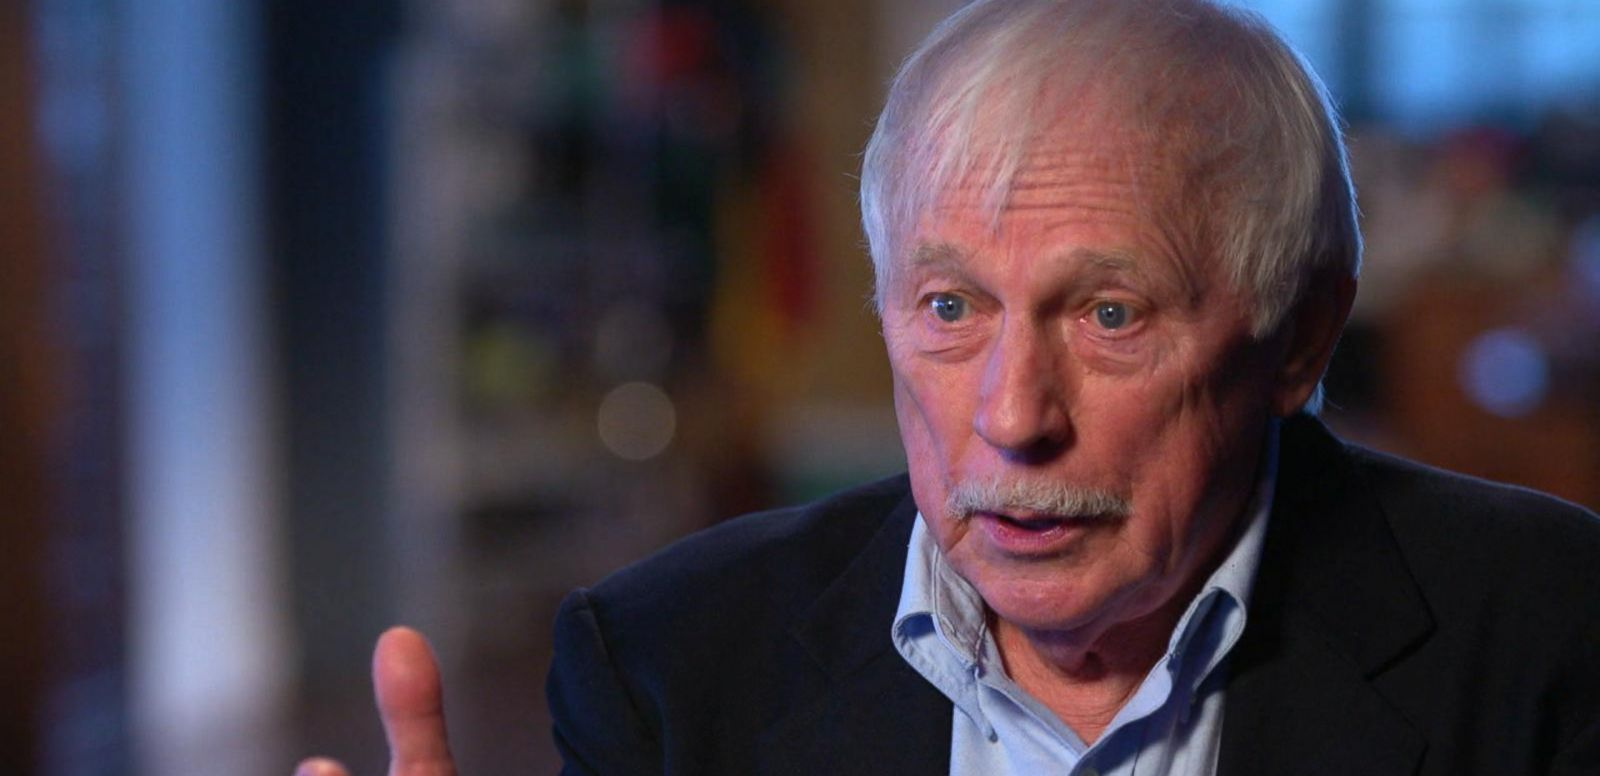 Scientology Leader David Miscavige's Father on Their Relationship: Part 1